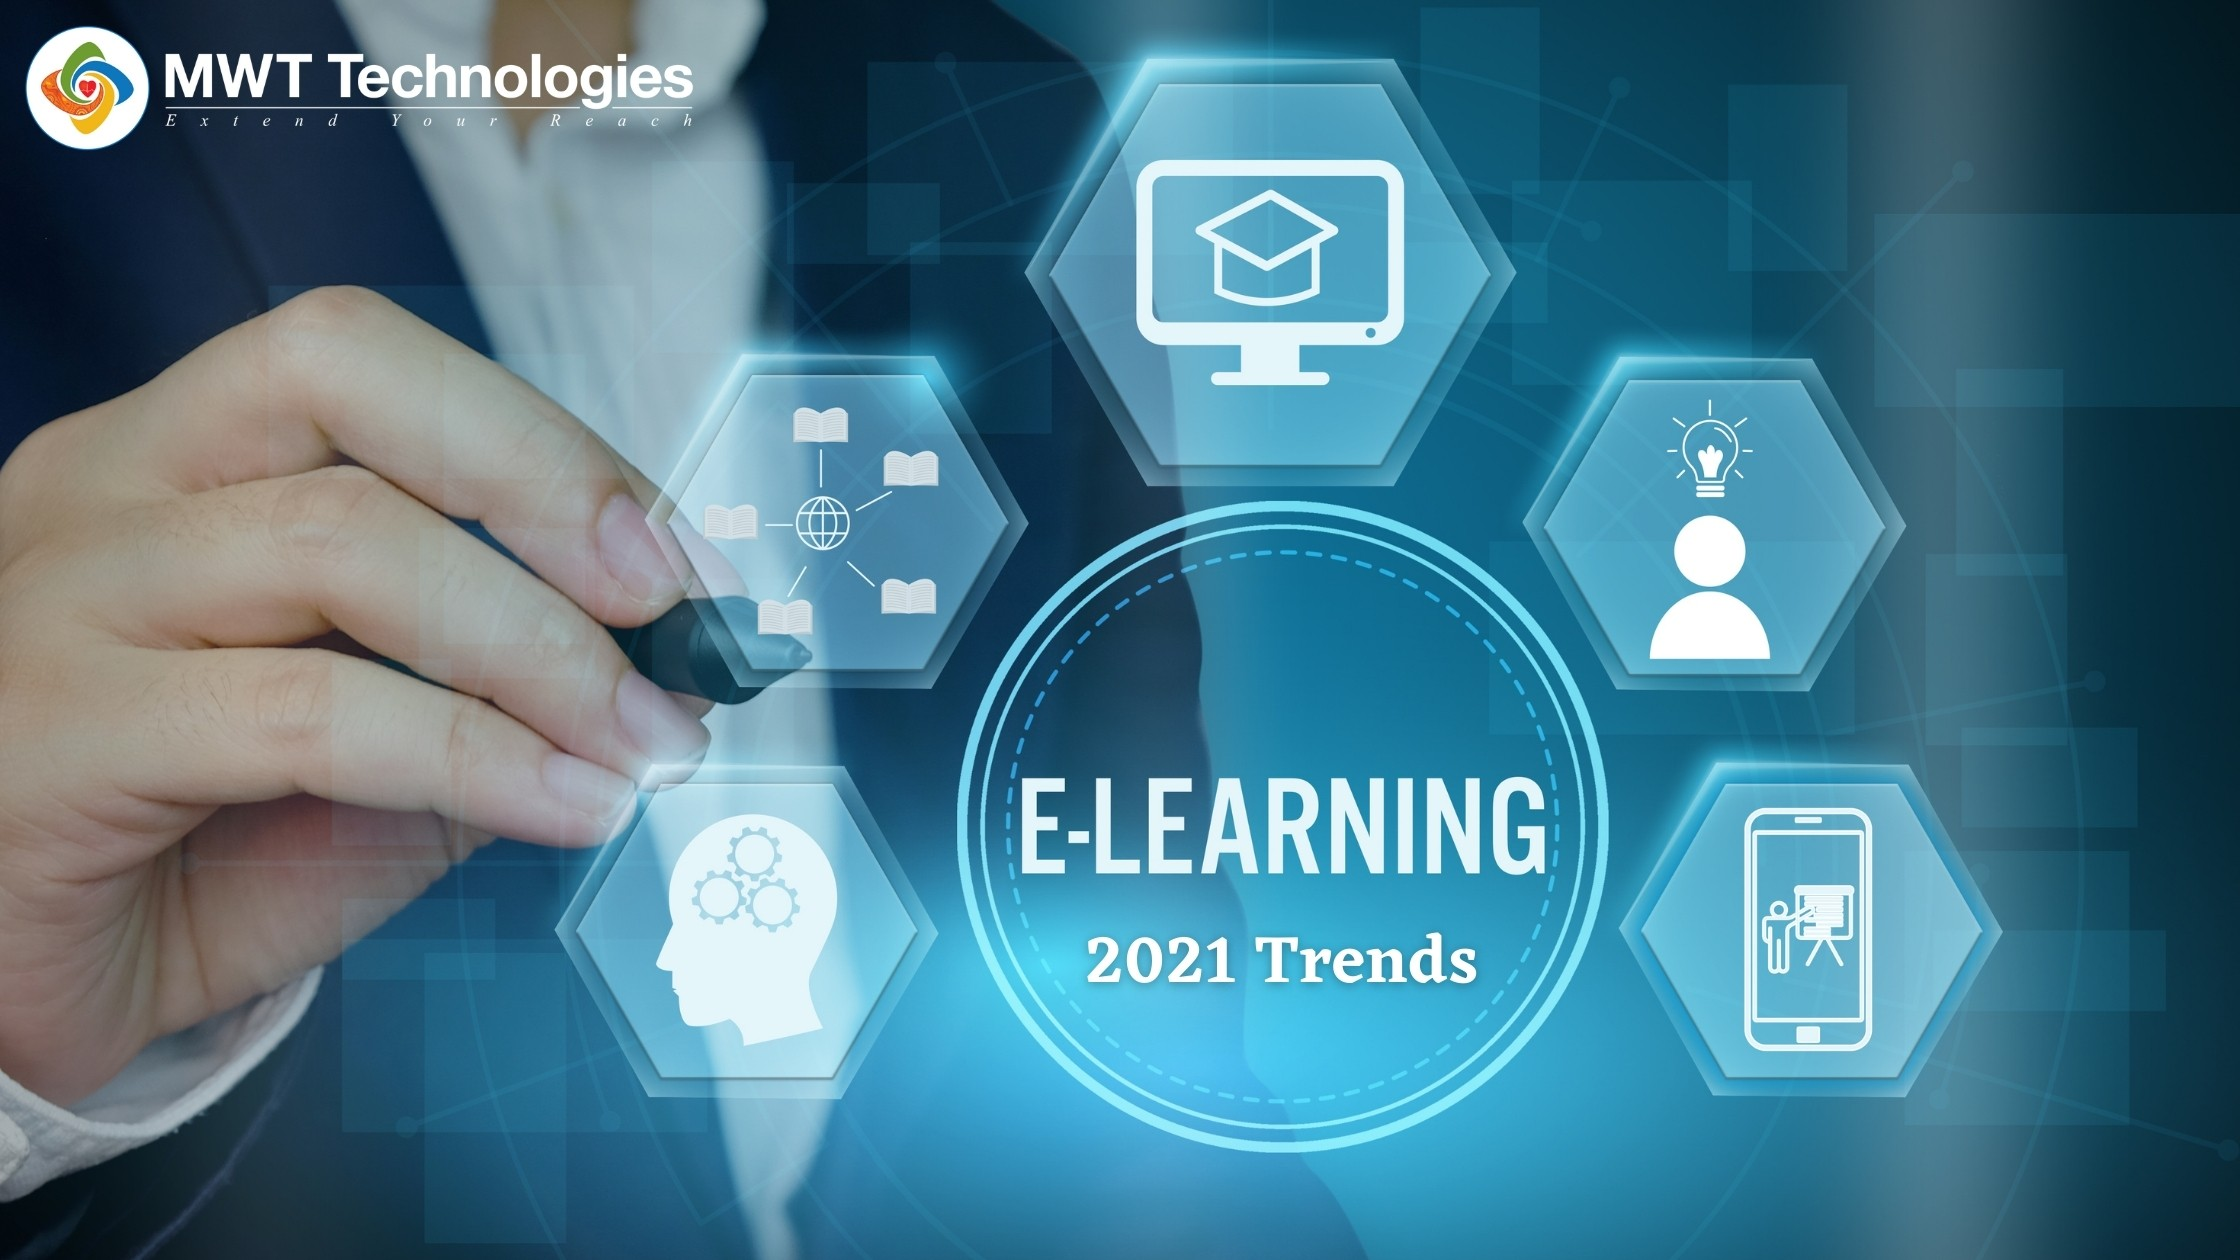 6 E-Learning Trends to look out for in 2021